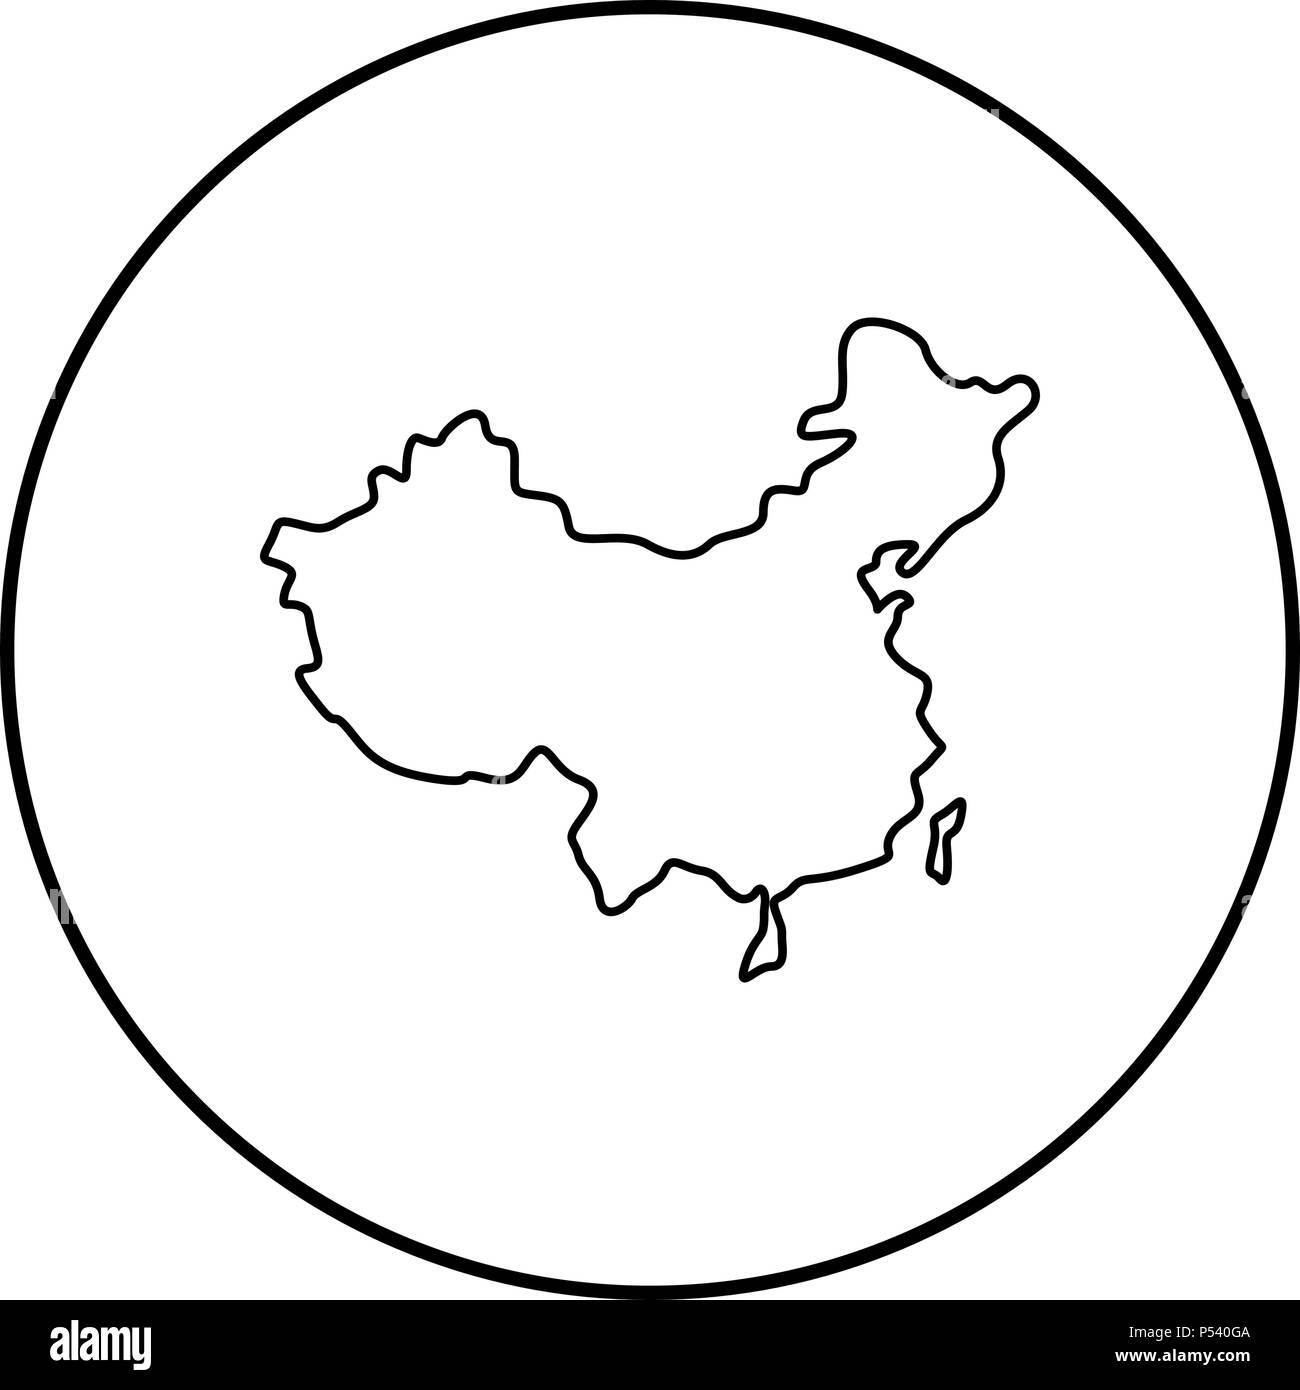 Map of China icon black color in circle round outline Stock Vector ...